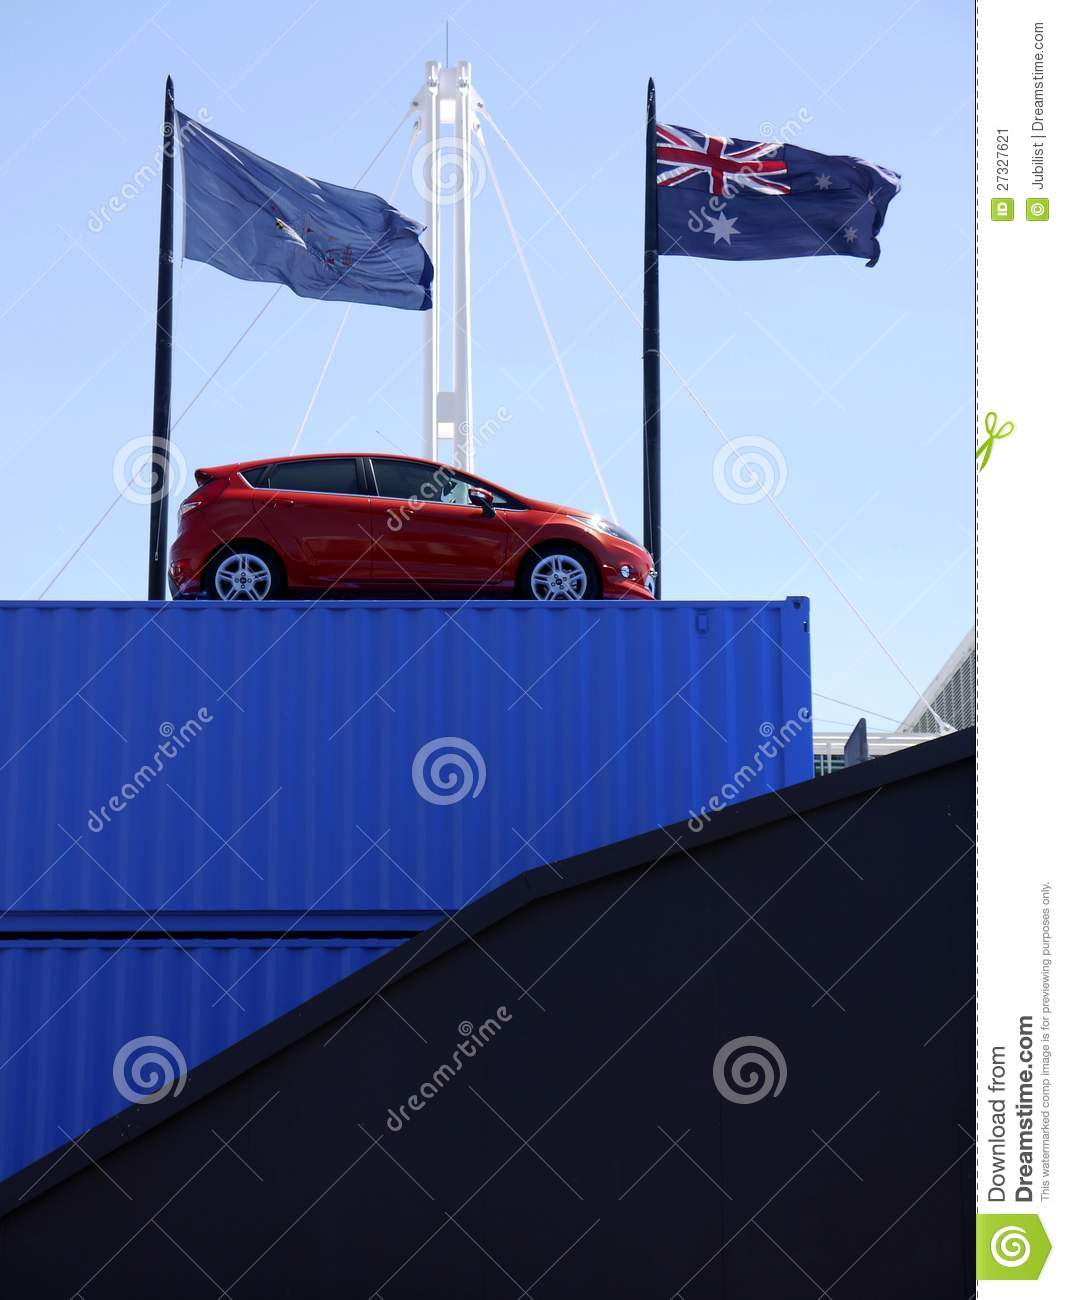 Car Show Vehicle On Shipping Container Stock Image Image Of Flags - Car show flags